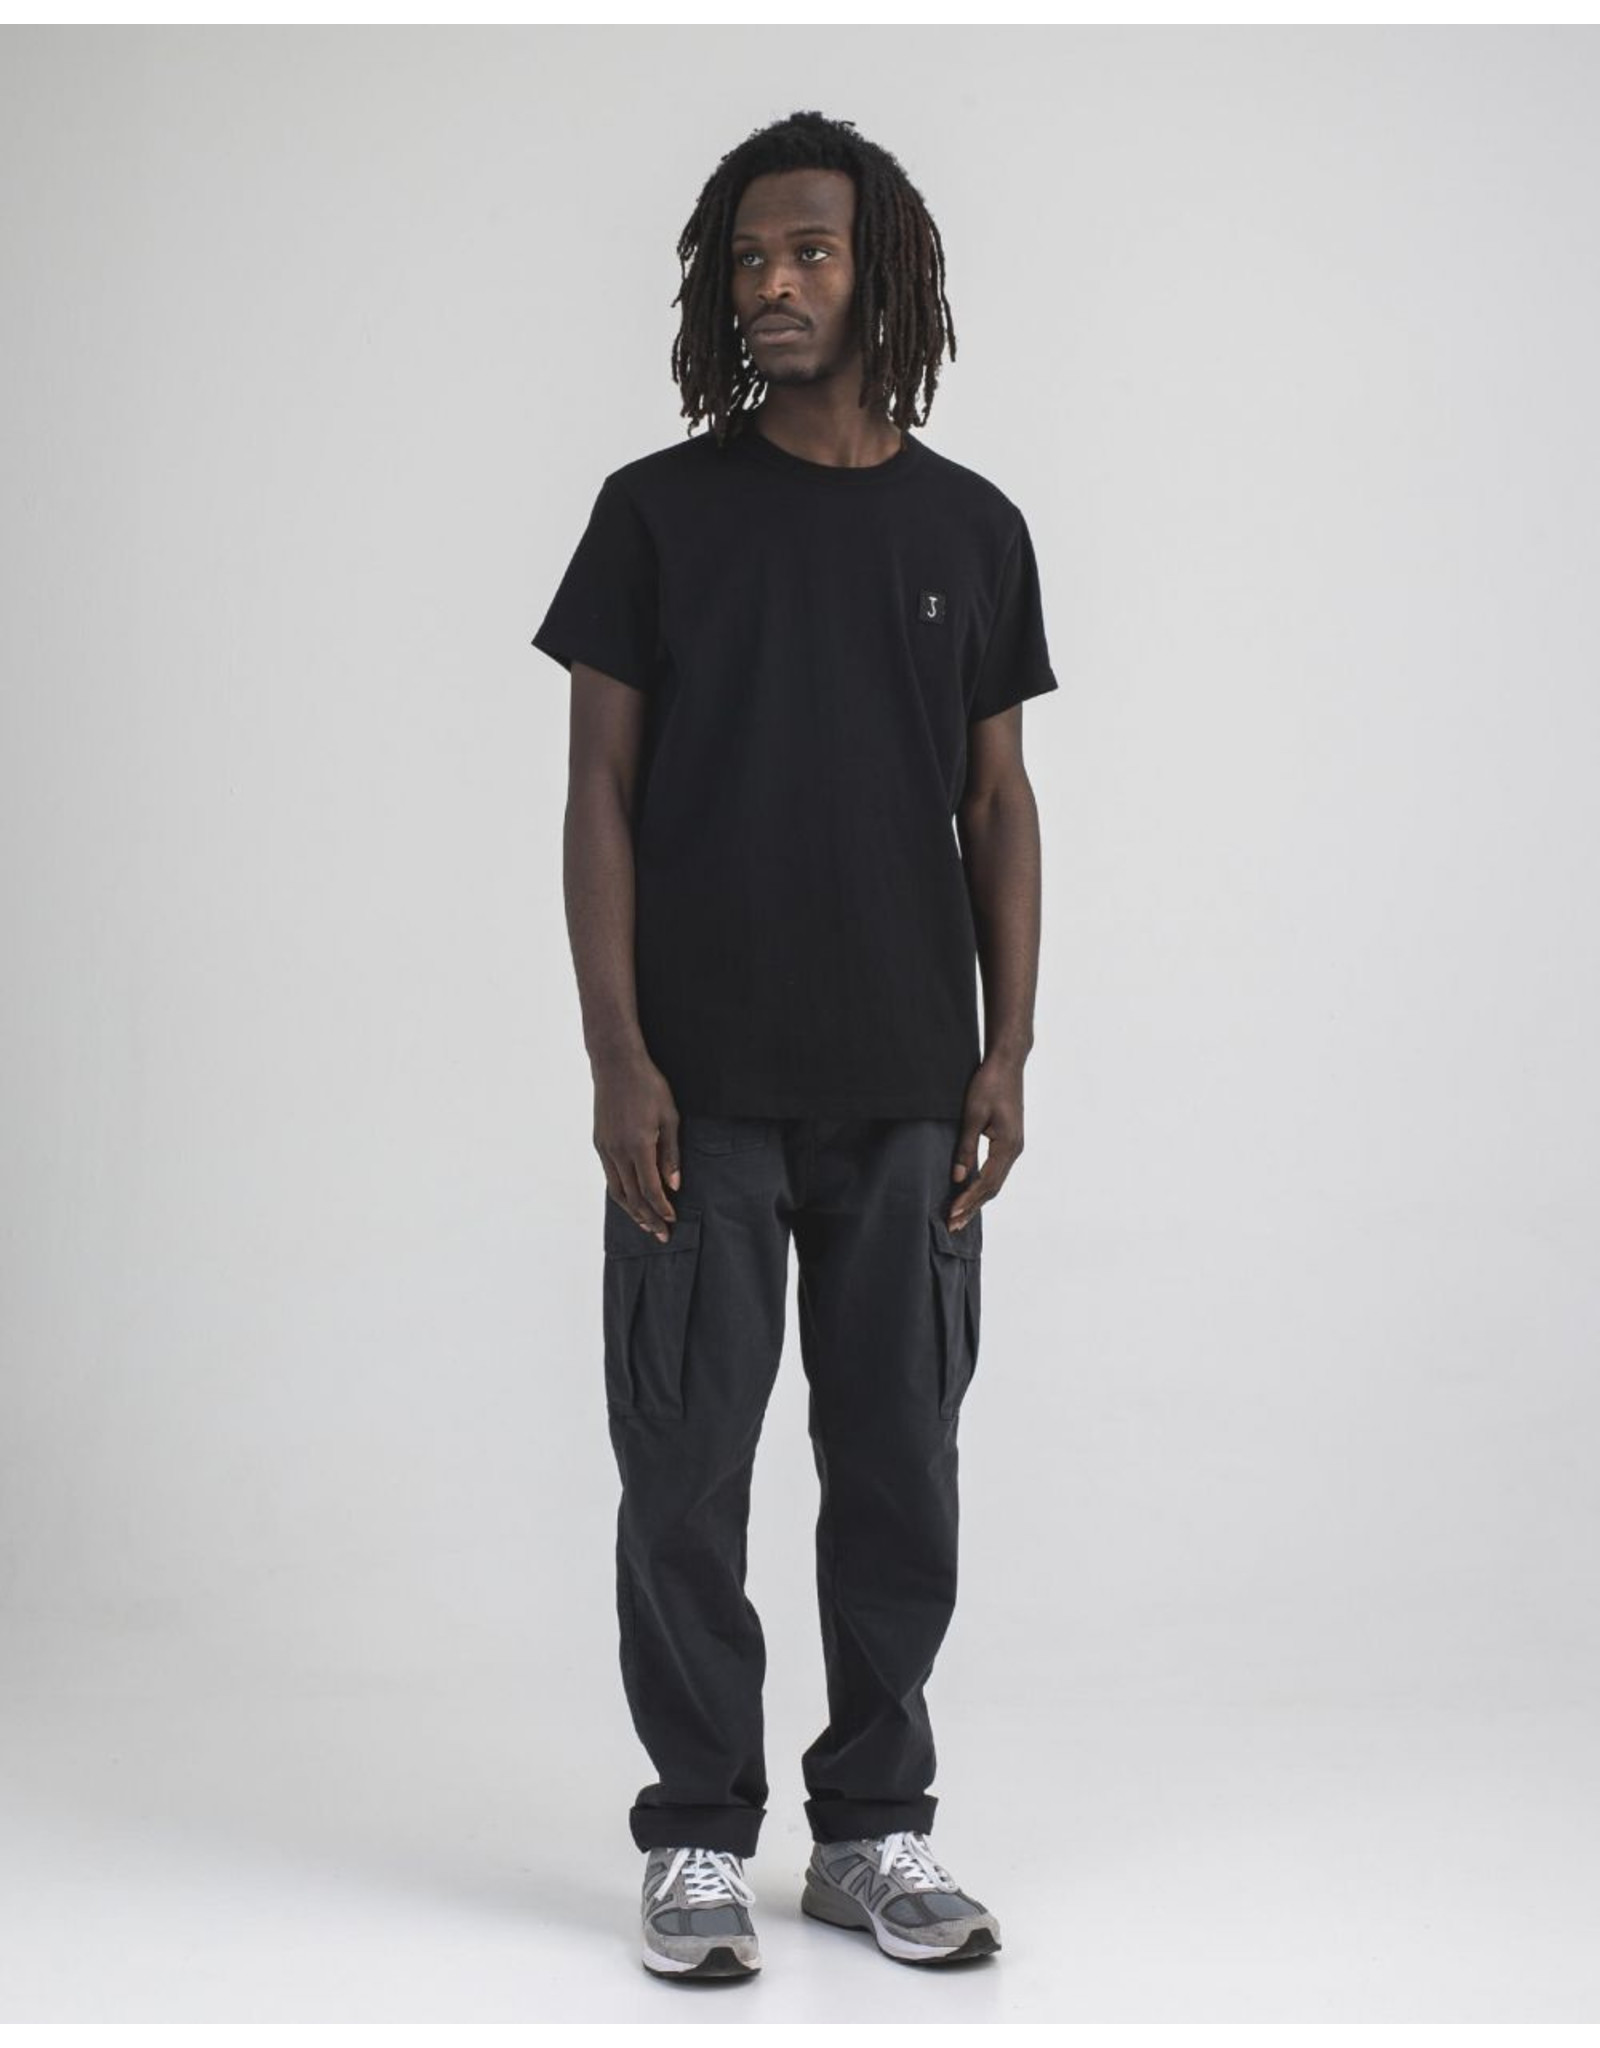 Butcher of Blue Army tee s/s